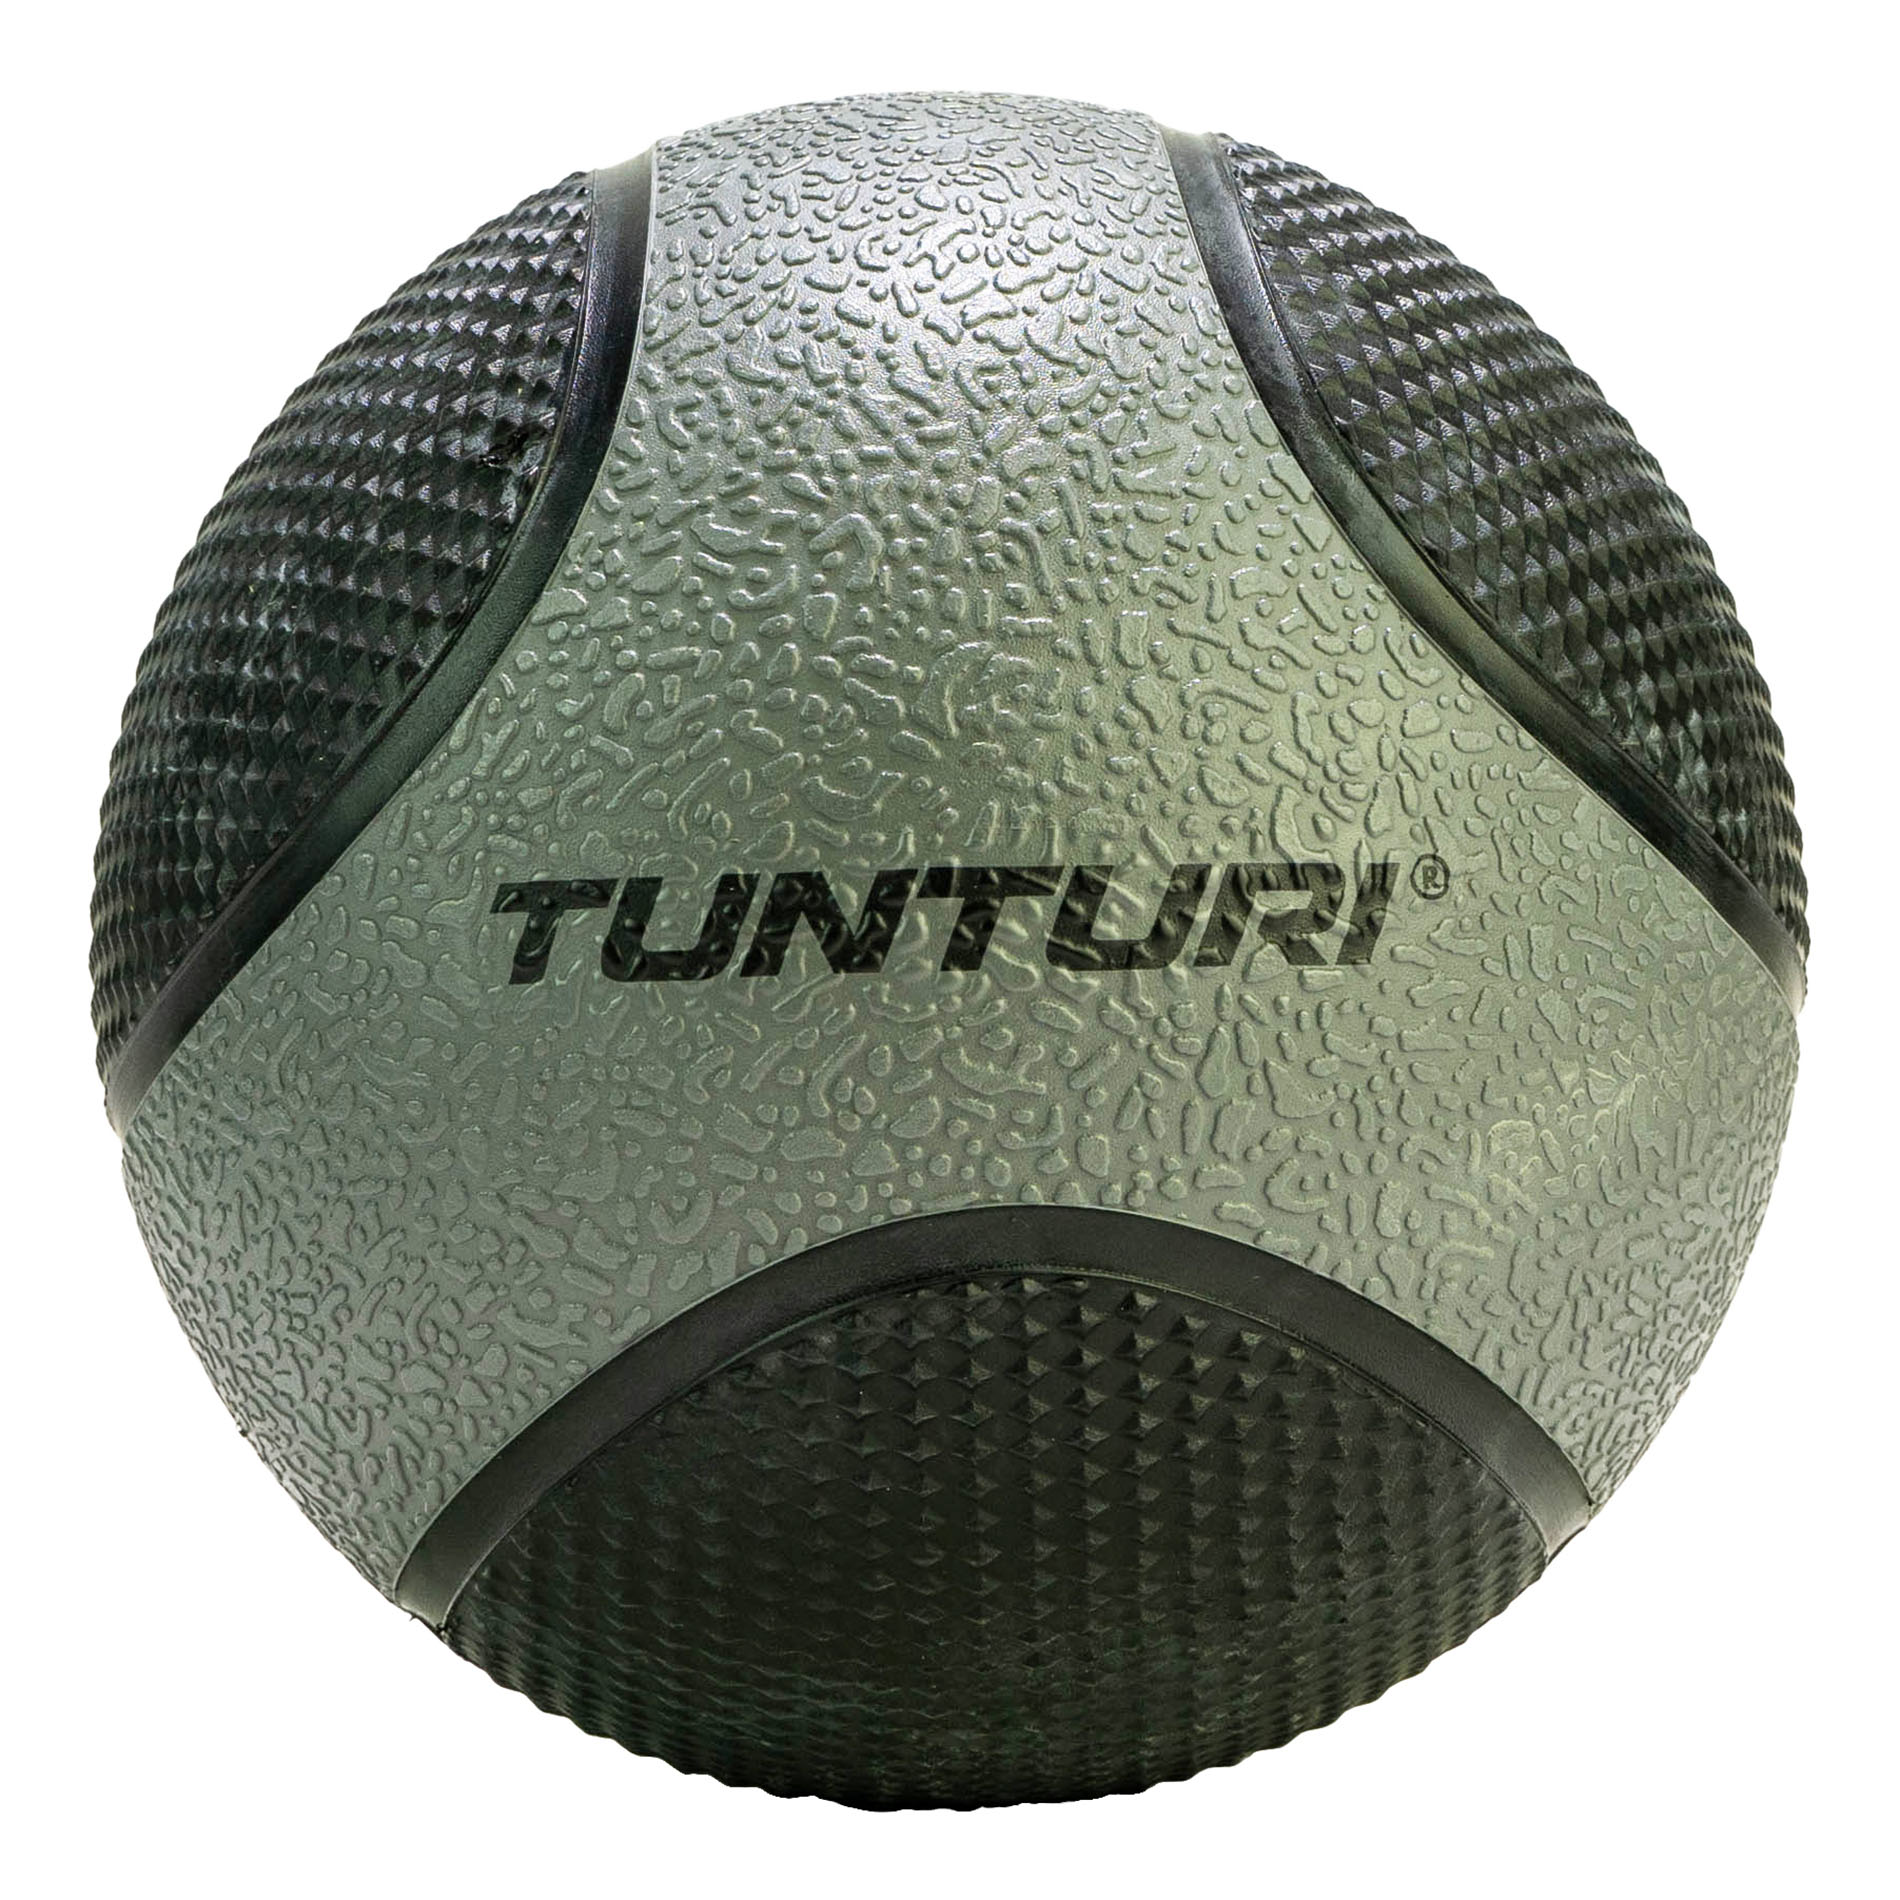 Medicine Ball - Medicijnbal - Rubber